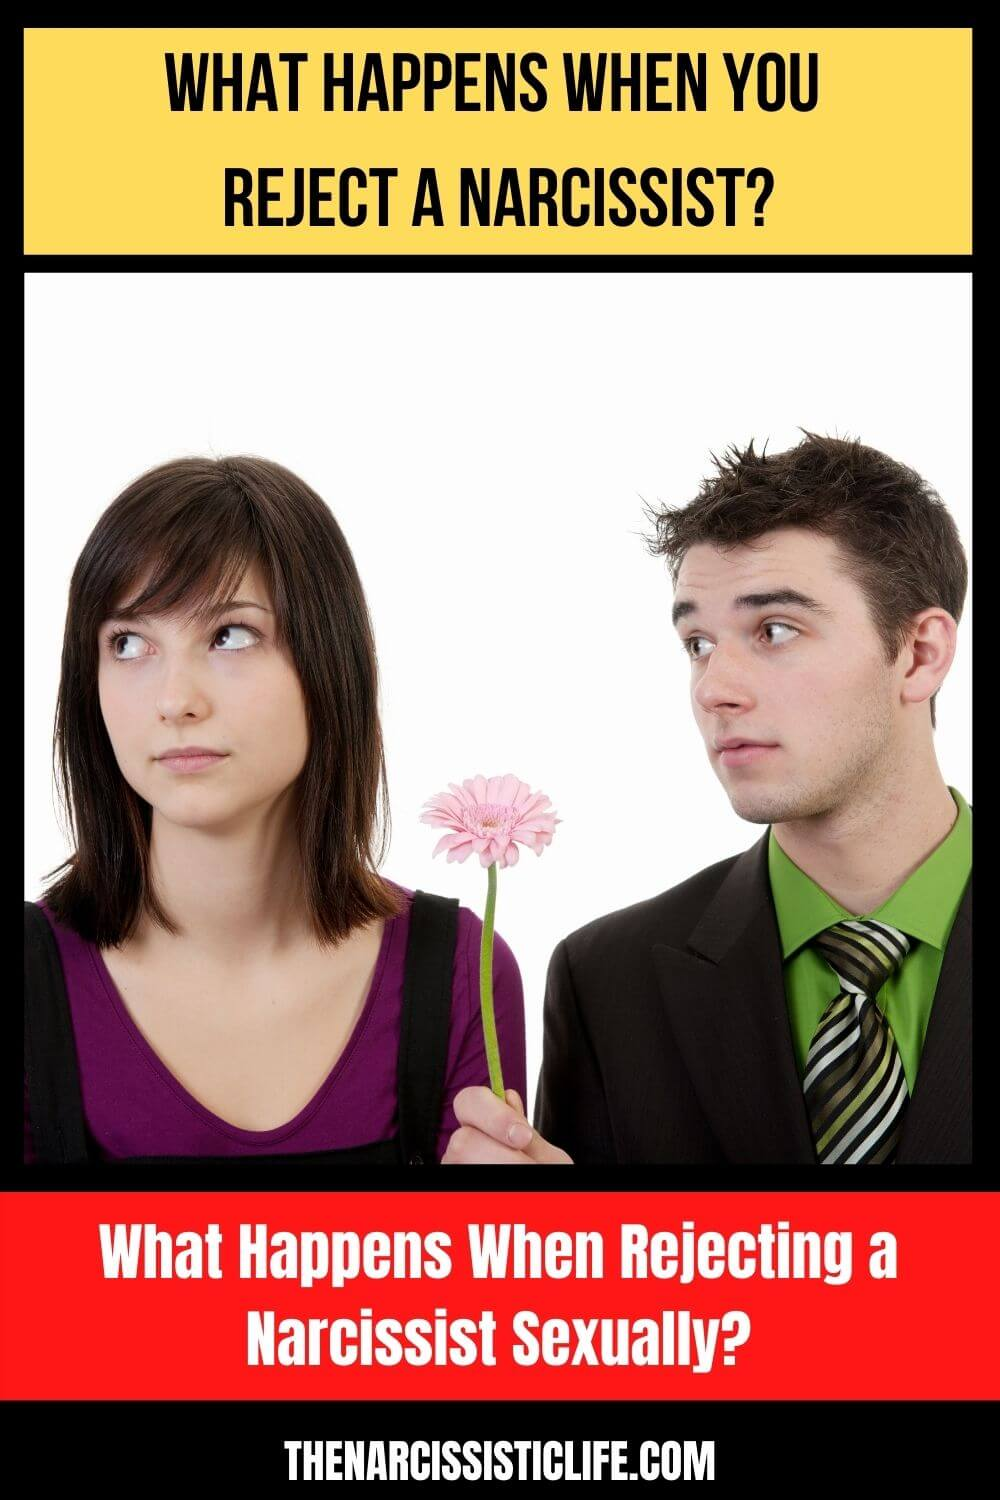 what happens when rejecting a narcissist sexually?